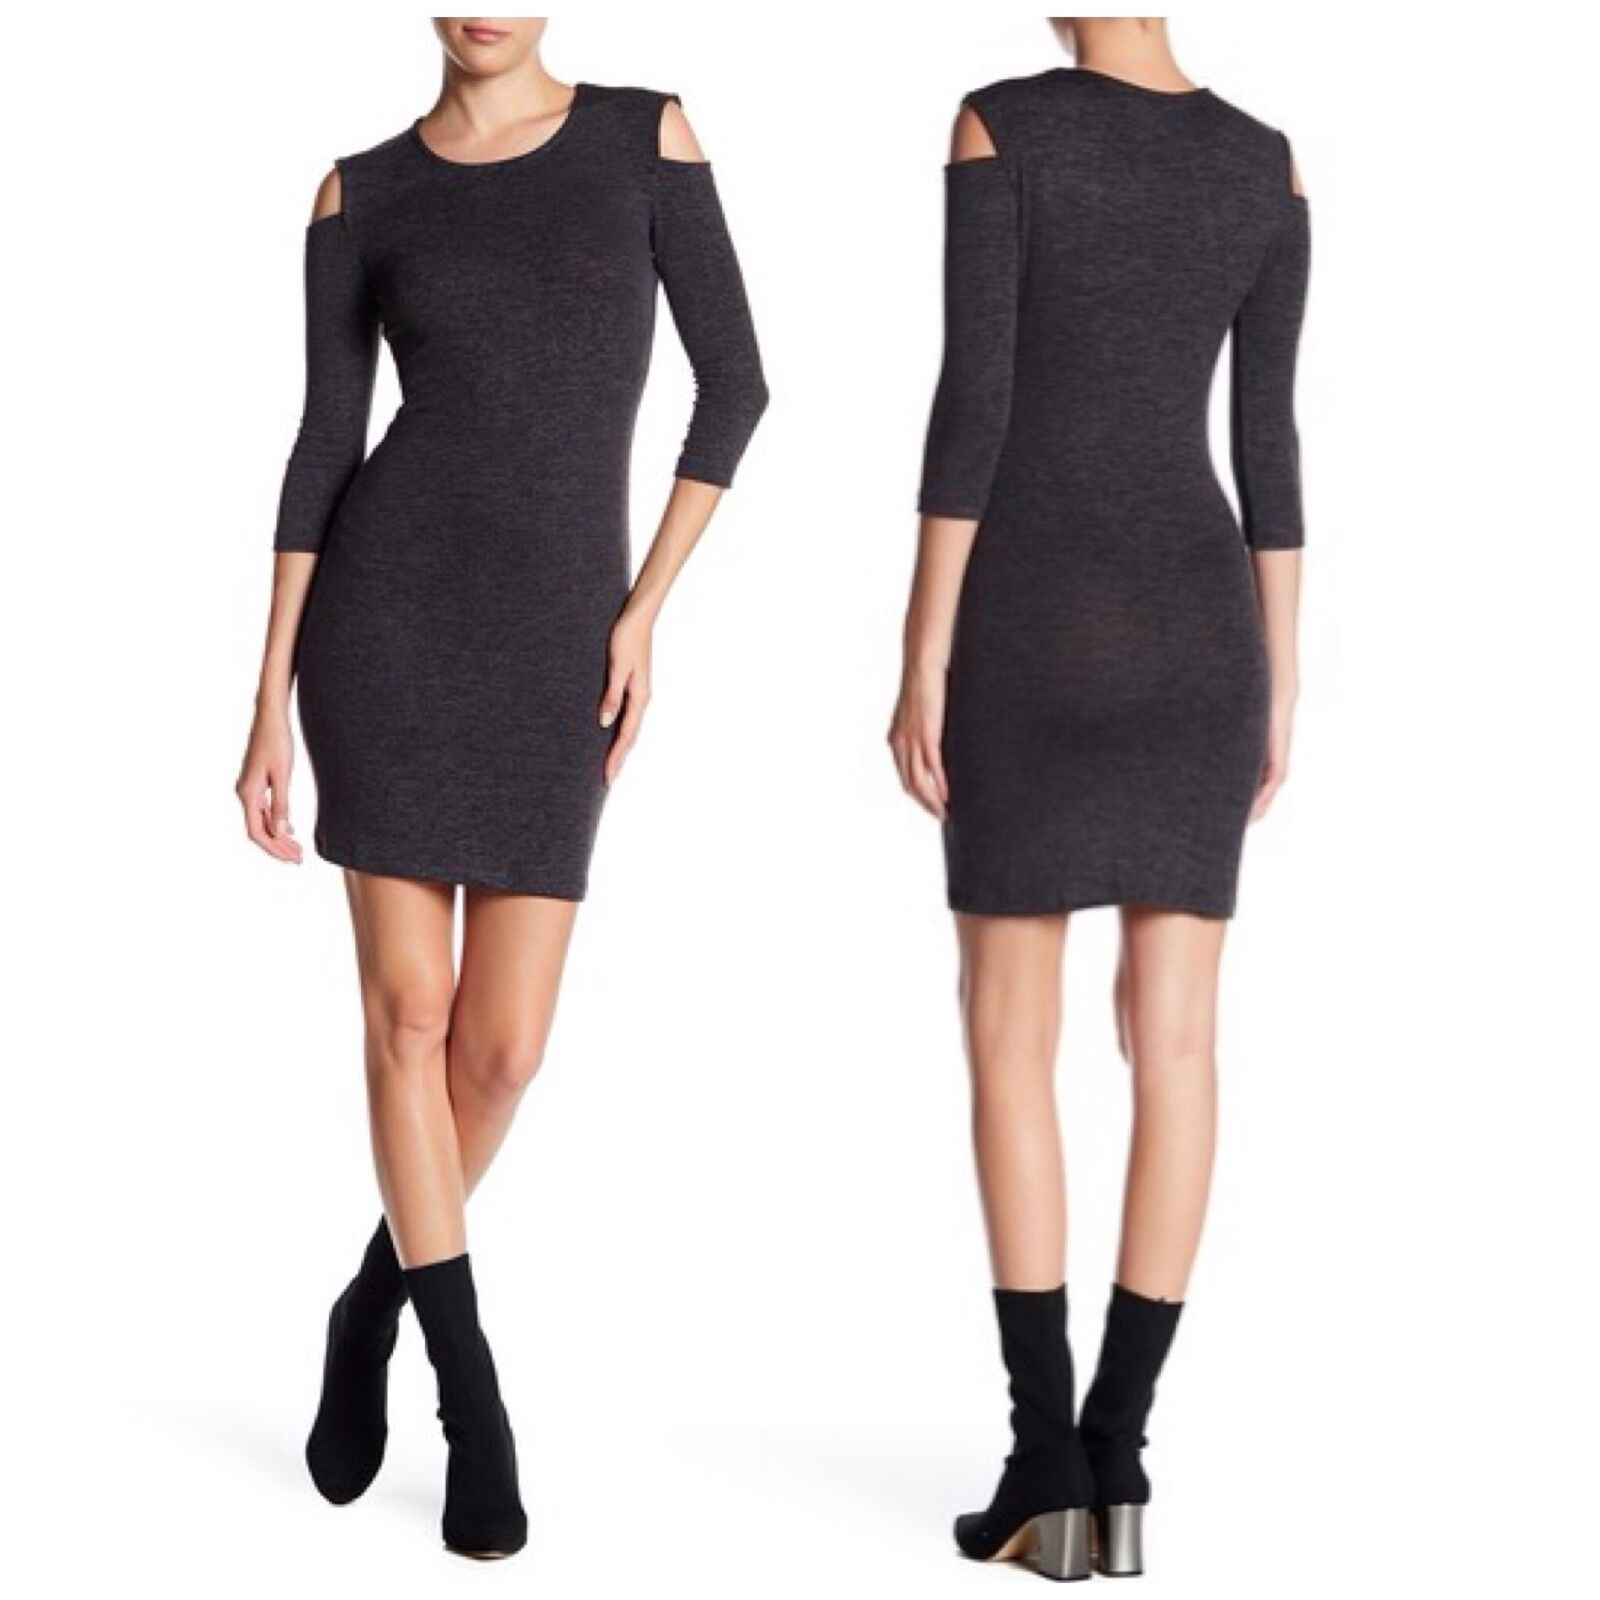 New French Connection Sweater Cold Shoulder Dress (Size L)